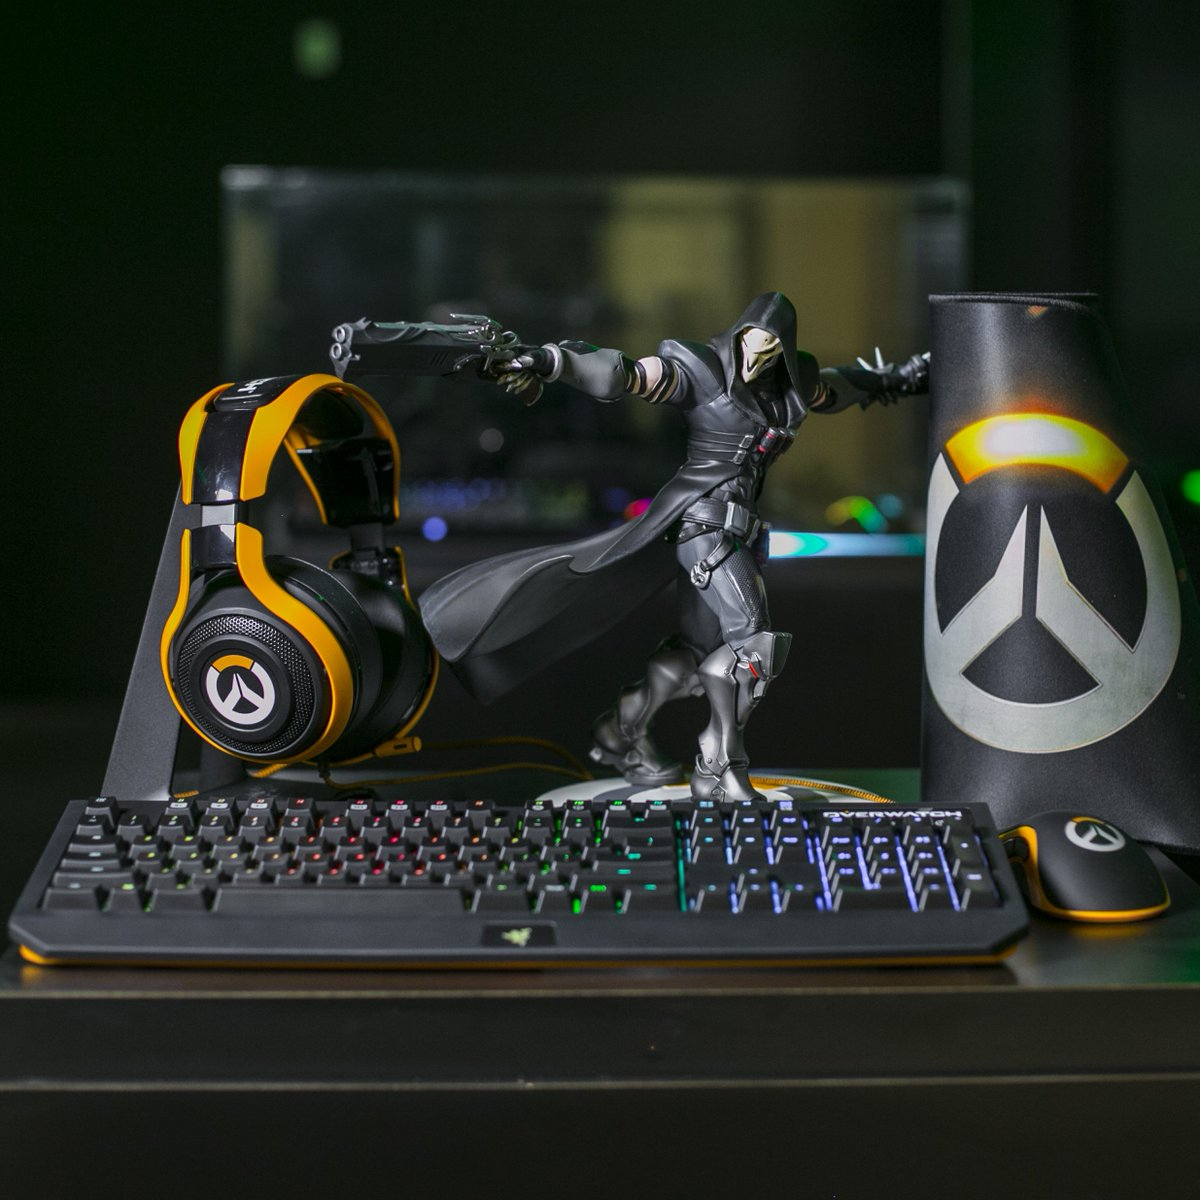 Reap the rewards of our #OverwatchAnniversary giveaway.  Enter now: https://t.co/r2aGg63Jqk https://t.co/UcHYKJjdey